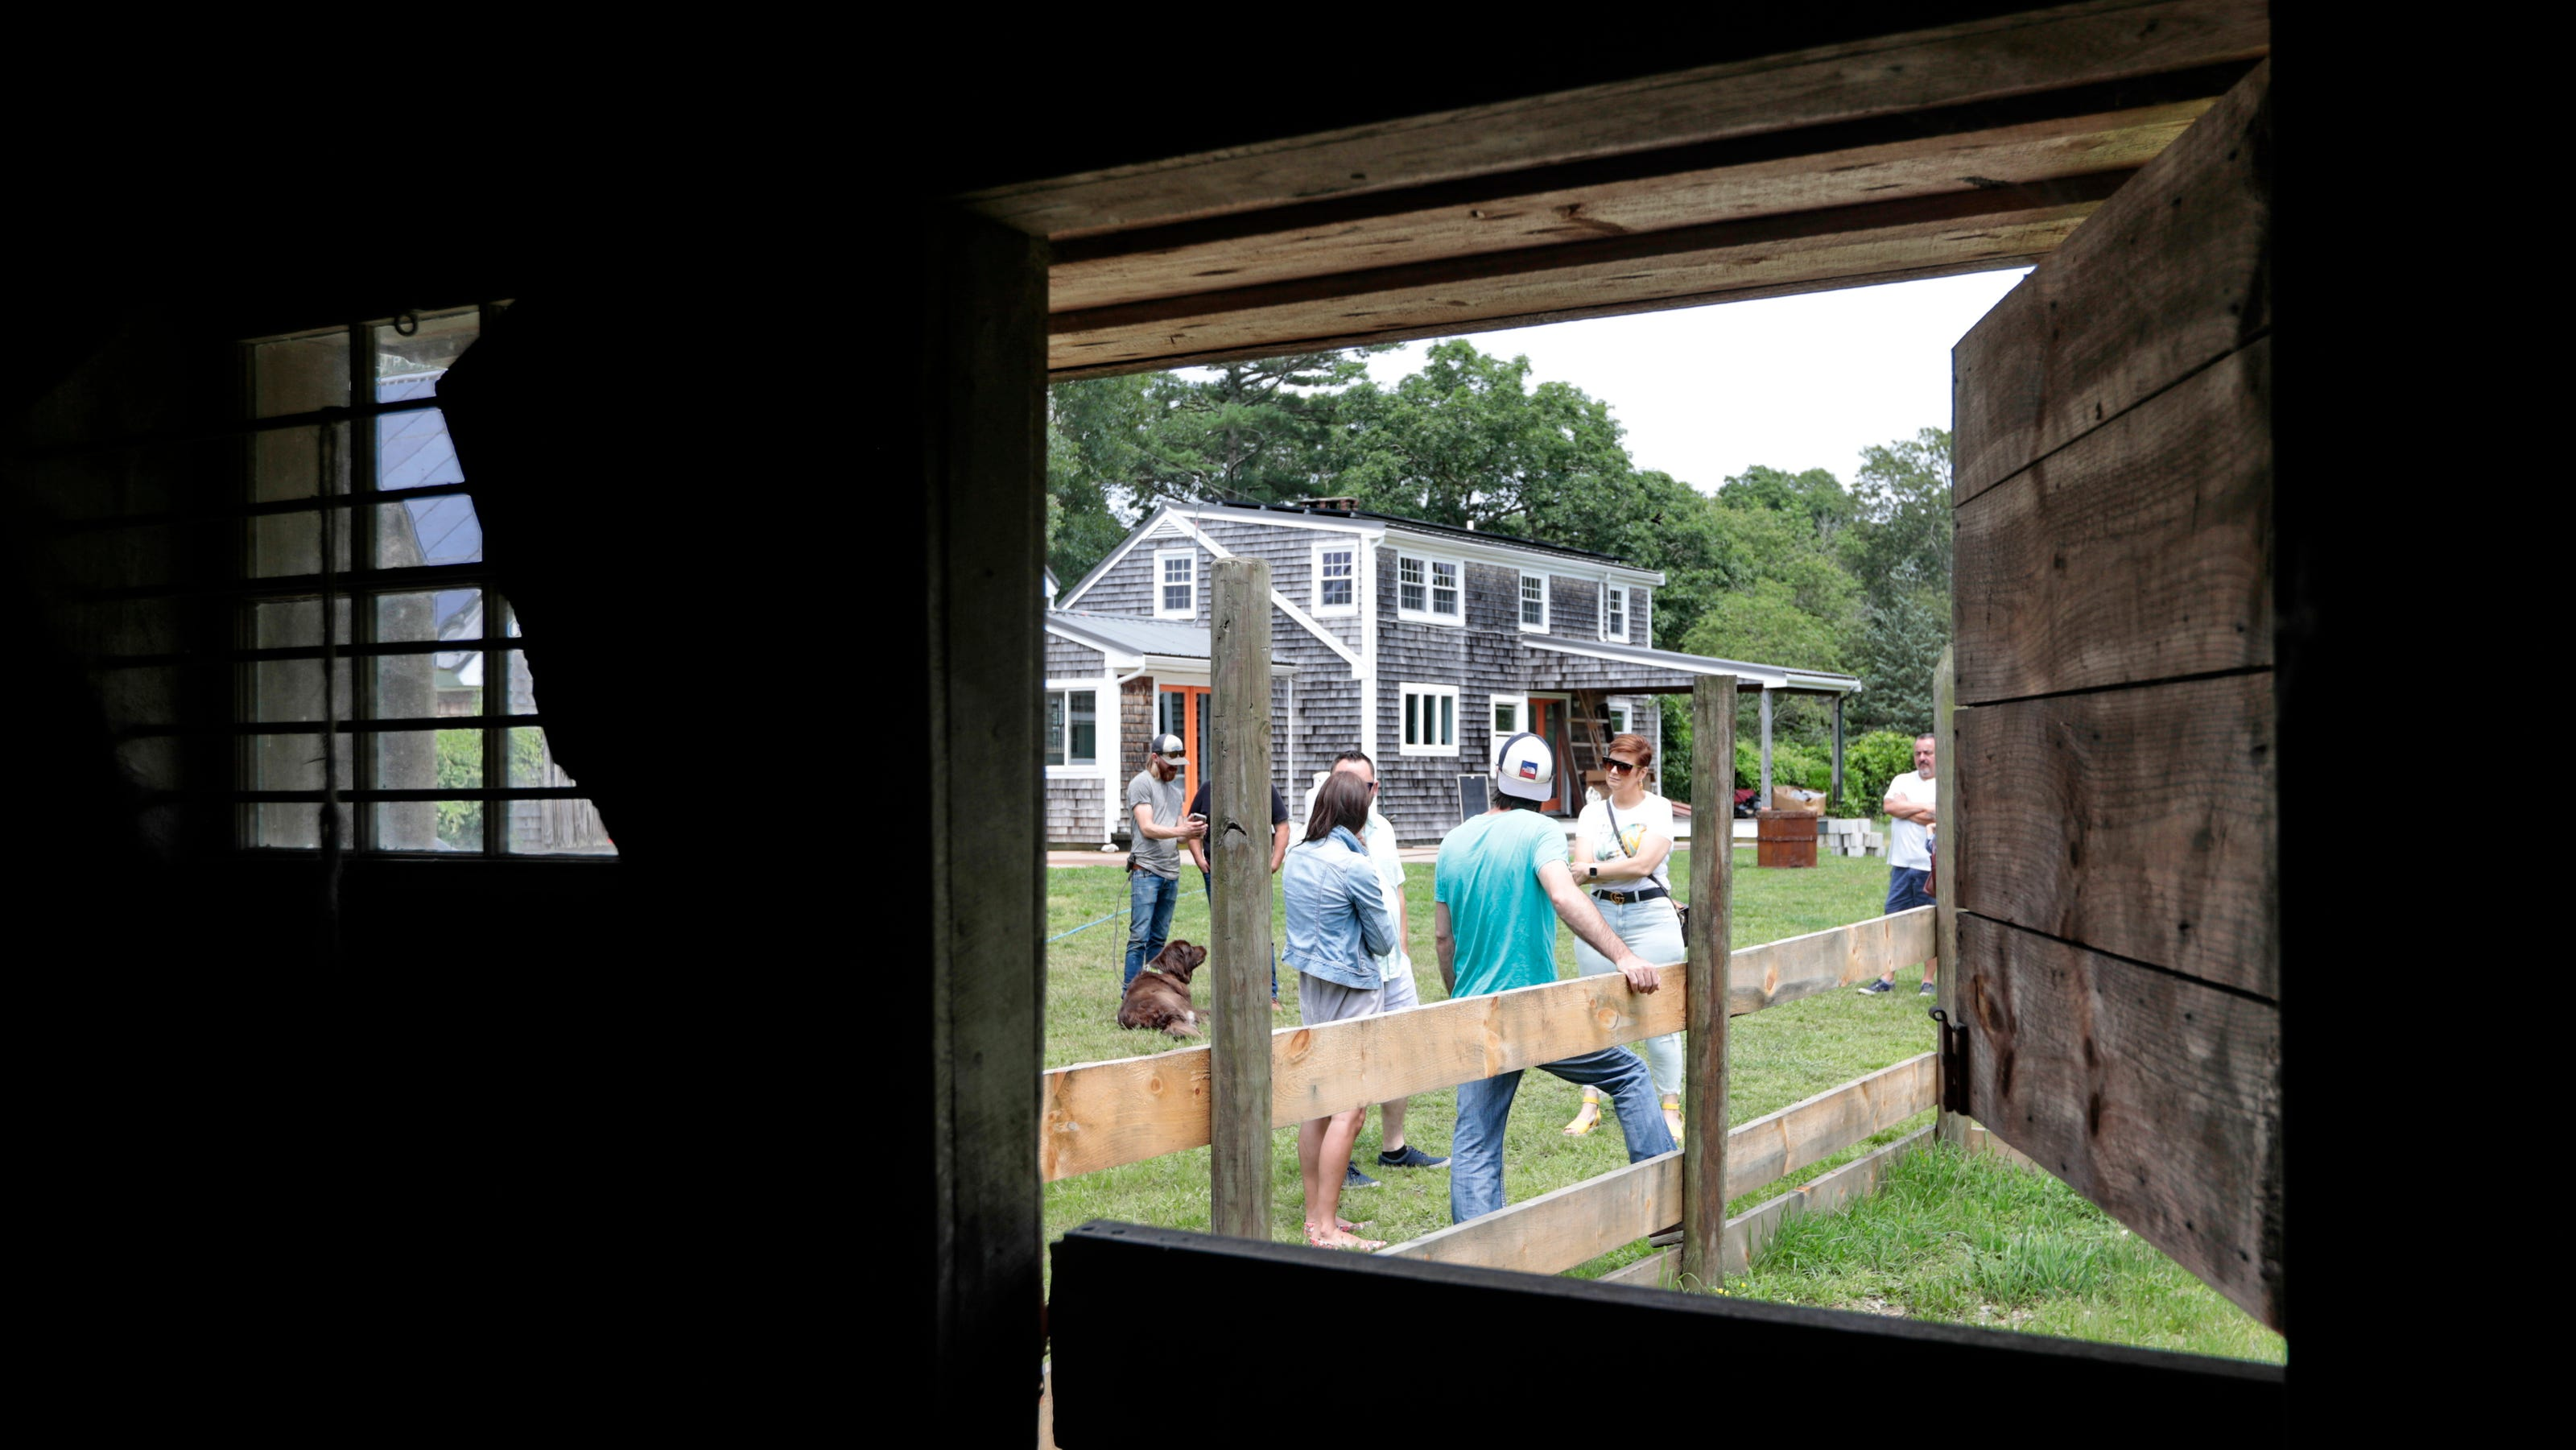 How nonprofit Flying Starlings will use a Dartmouth farm to help children with autism - SouthCoastToday.com